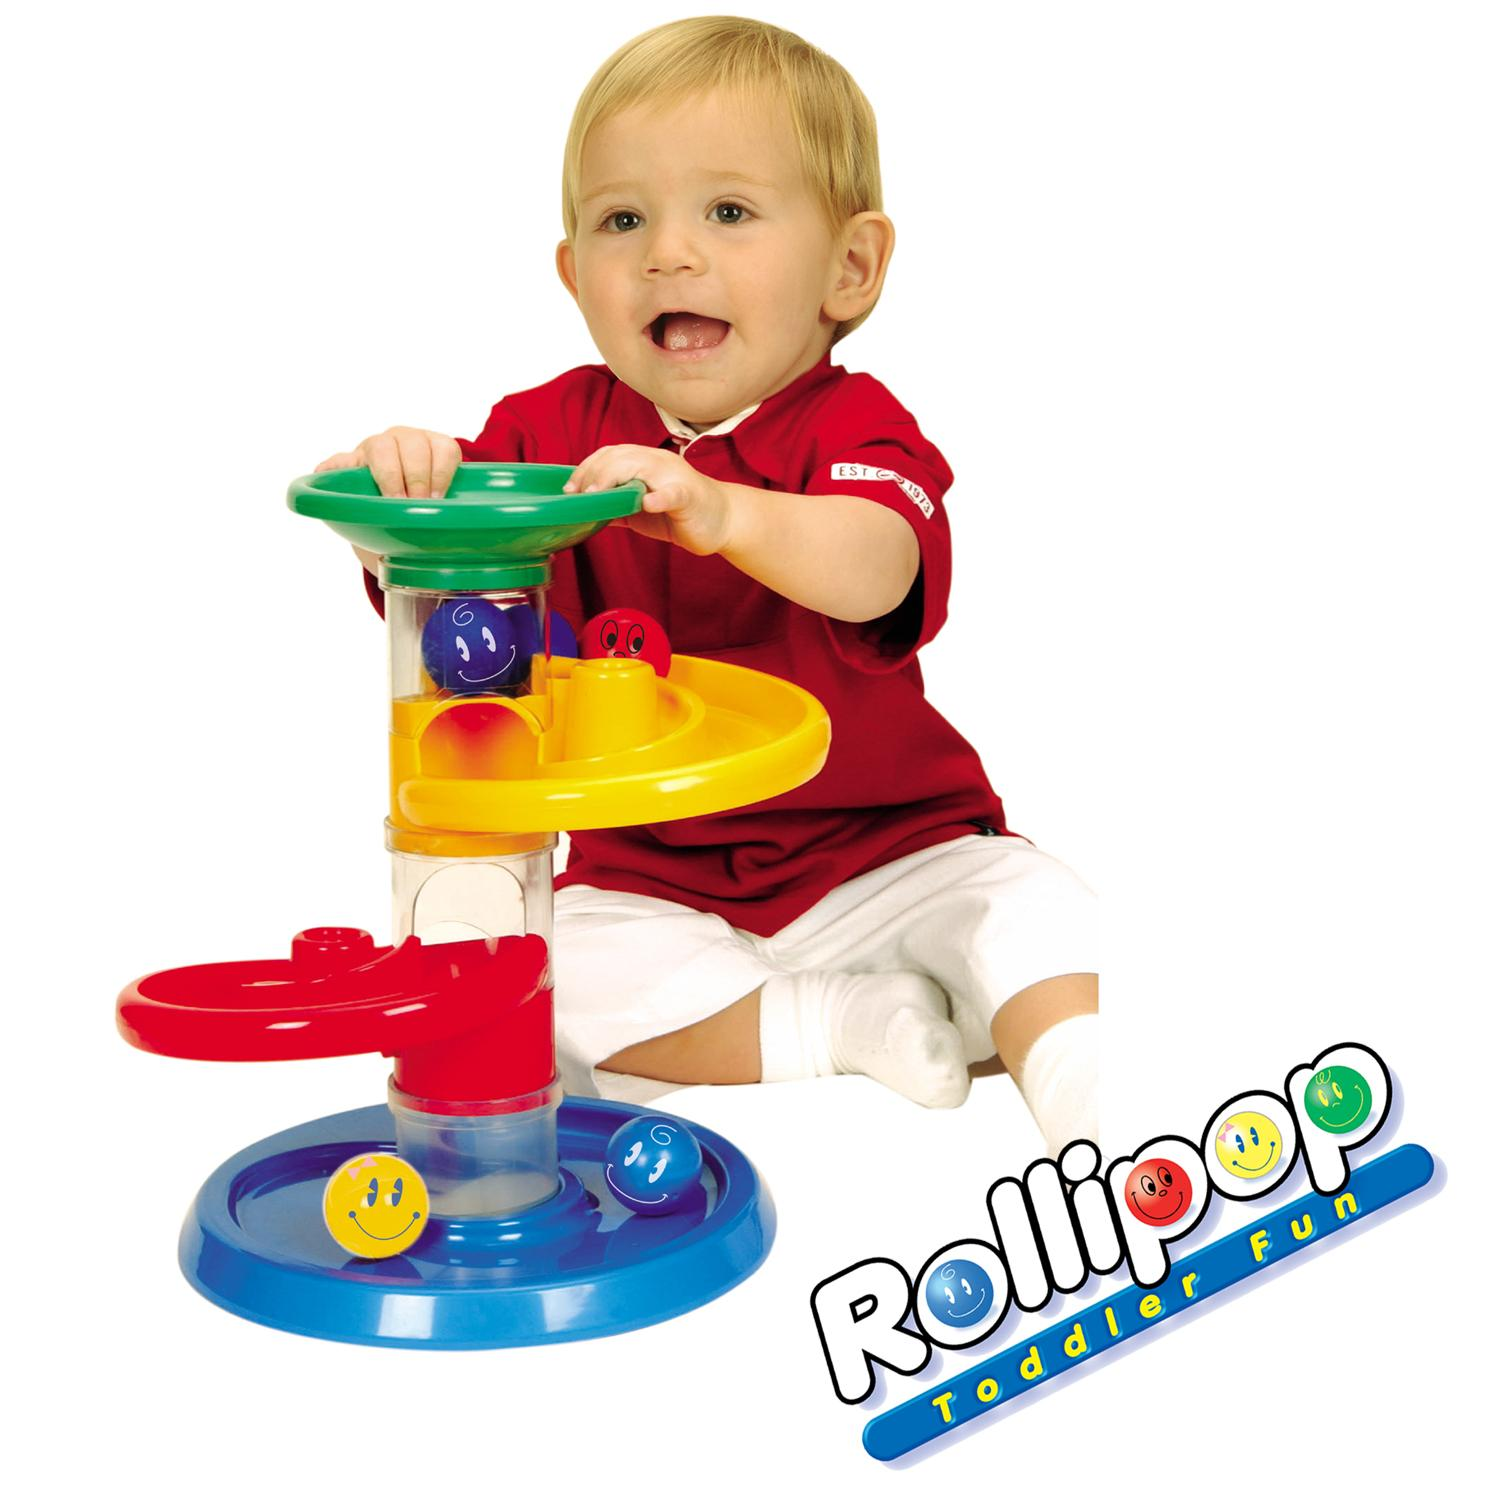 Rollipop Baby Toddler Roller Ball Drop Track Marble Run Activity